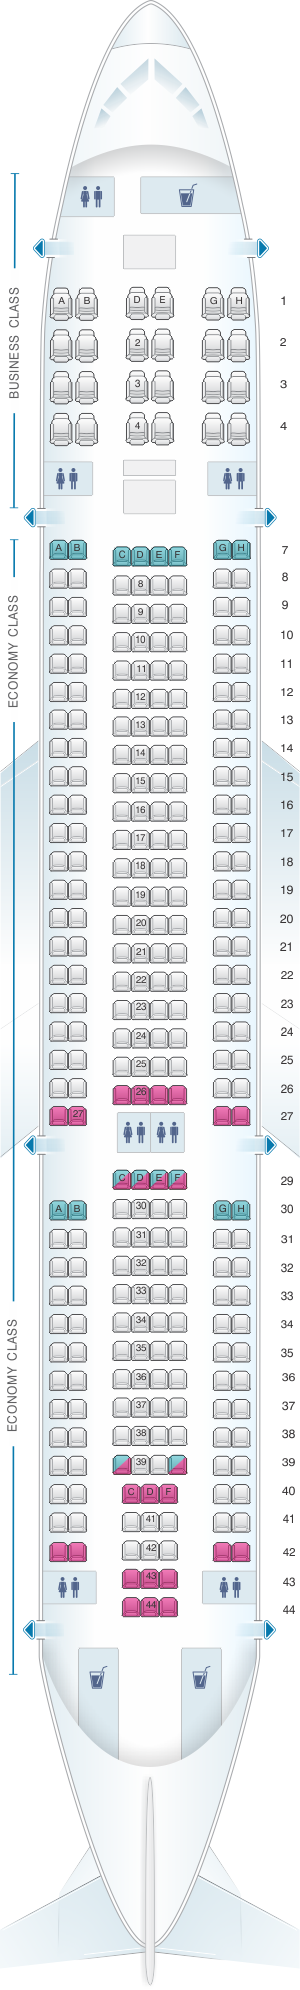 Seat map for Air Europa Airbus A330 200